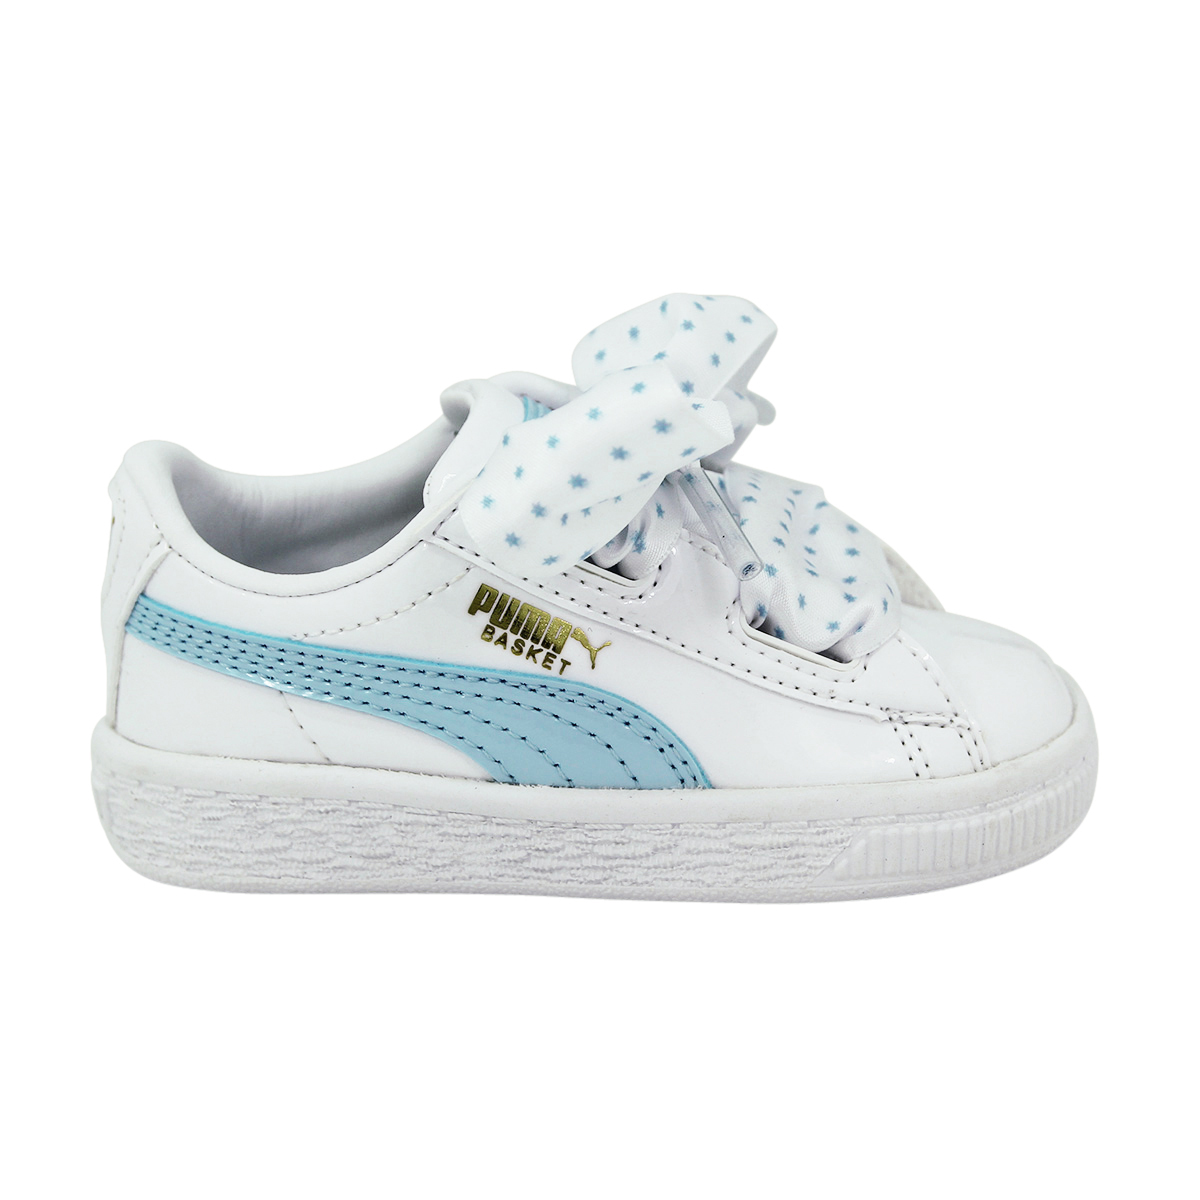 günstiger Preis Discounter verschiedene Stile Details about Puma Basket Heart Stars Inf Children Girl Sneakers Shoes New-  show original title